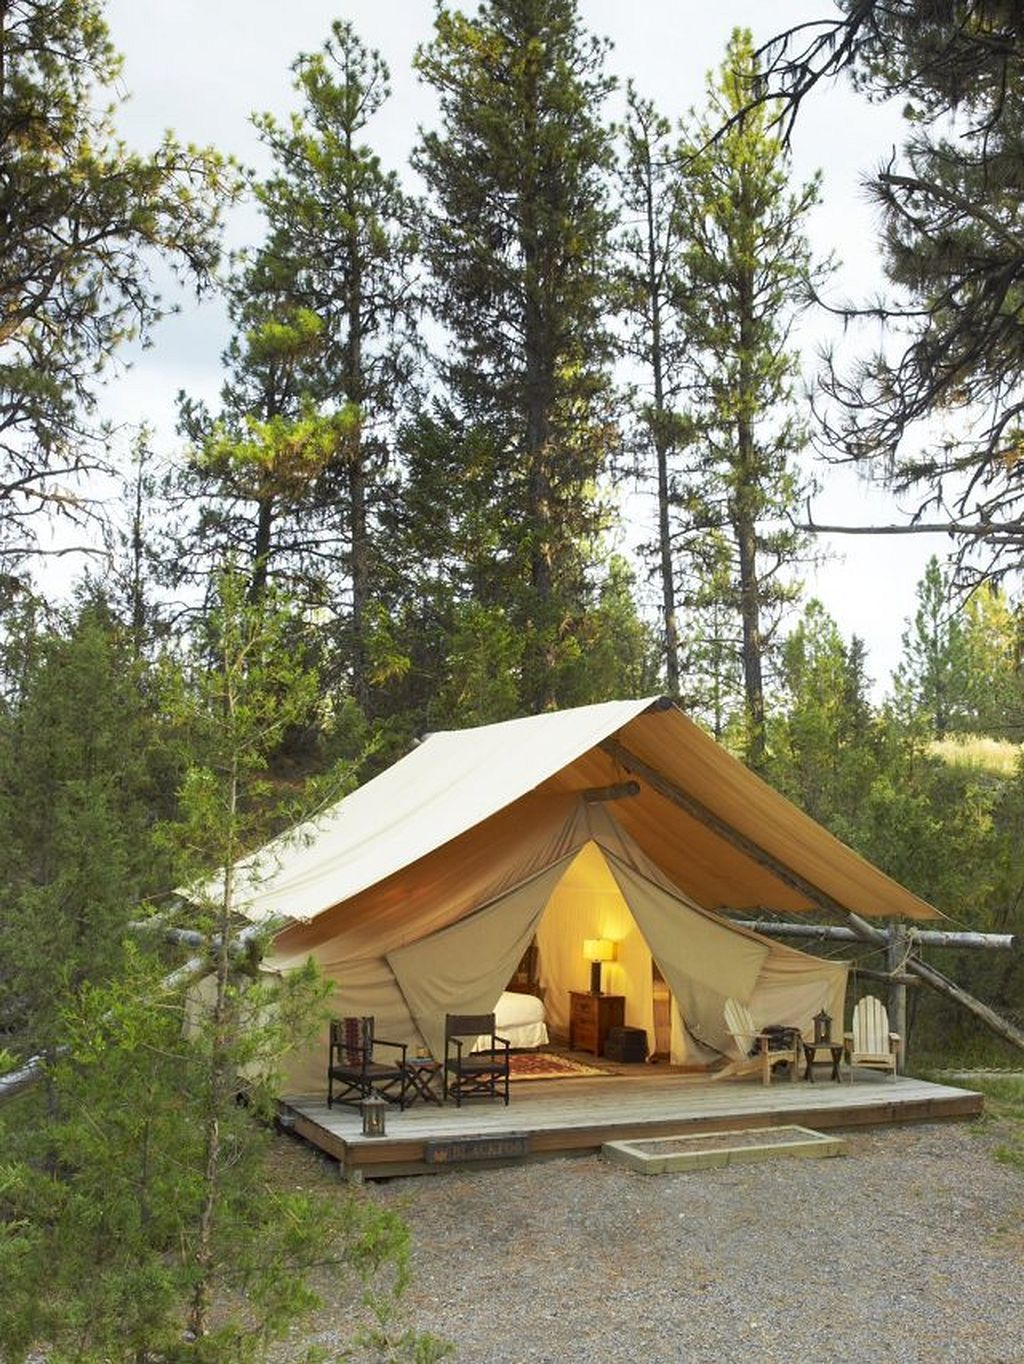 149 backyard tent ideas for your family camping backyards